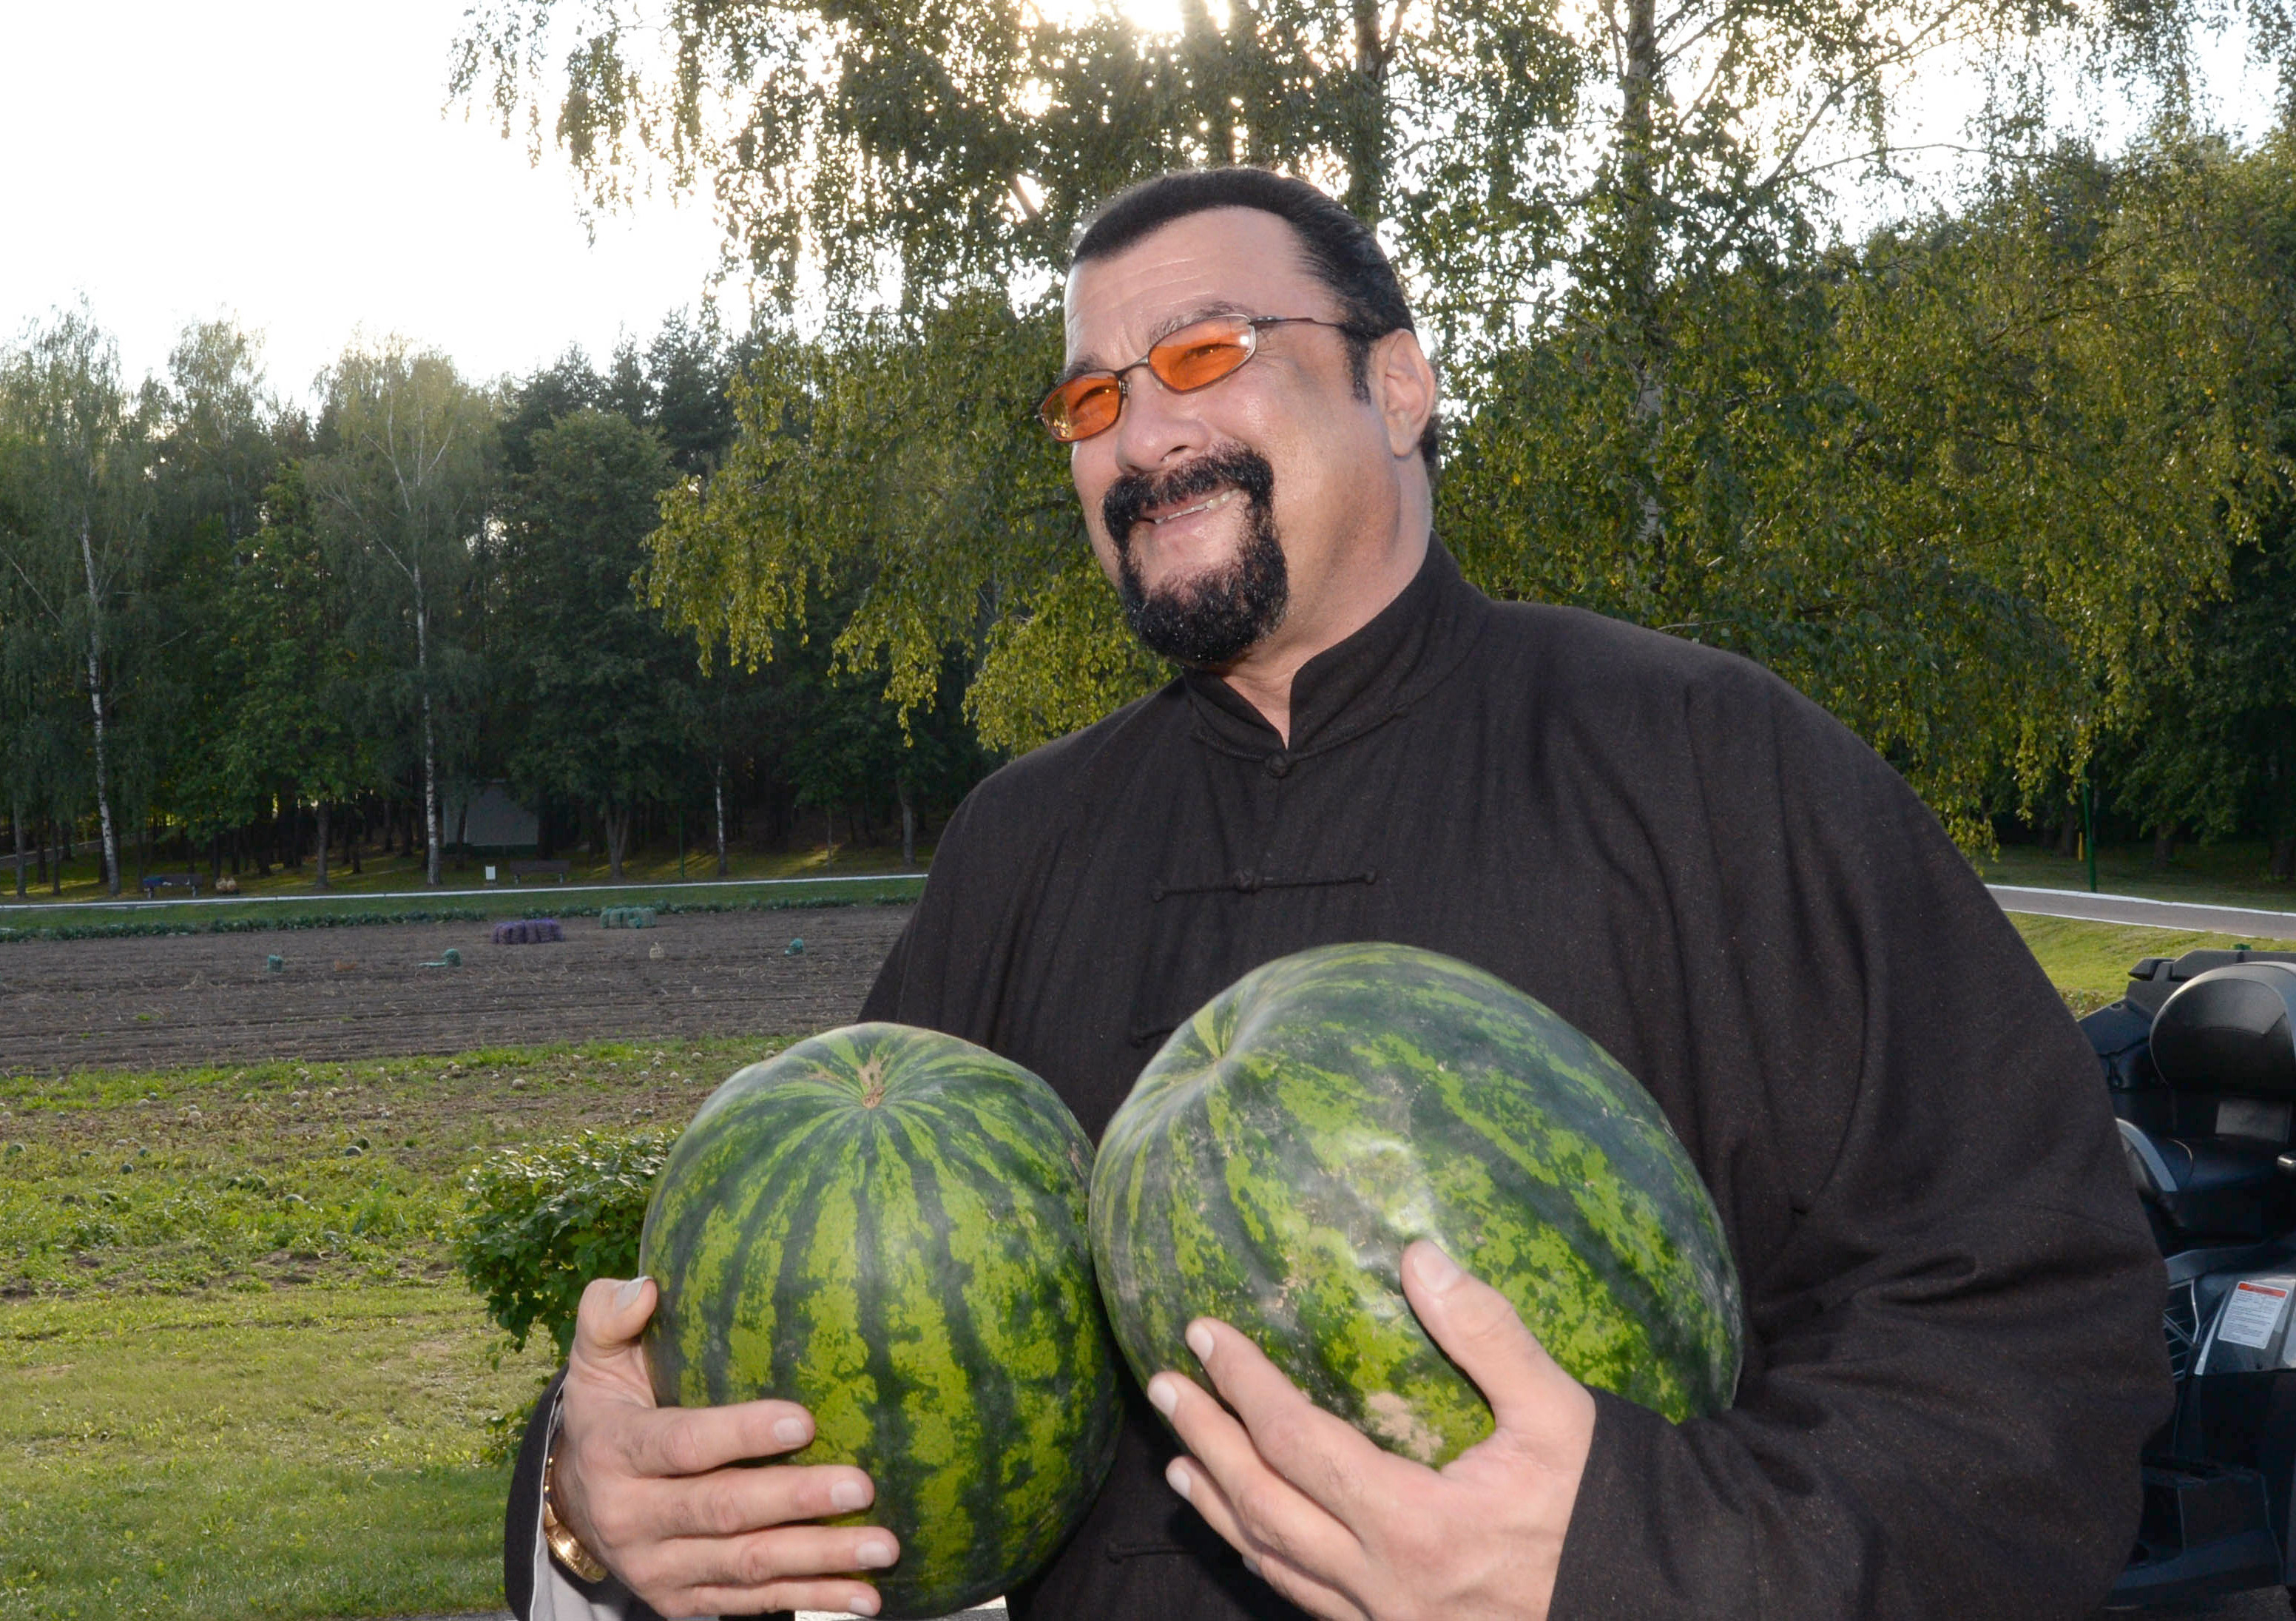 U.S. actor Steven Seagal holds two water melons during his meeting with the Belarus President at his residence on August 24, 2016.